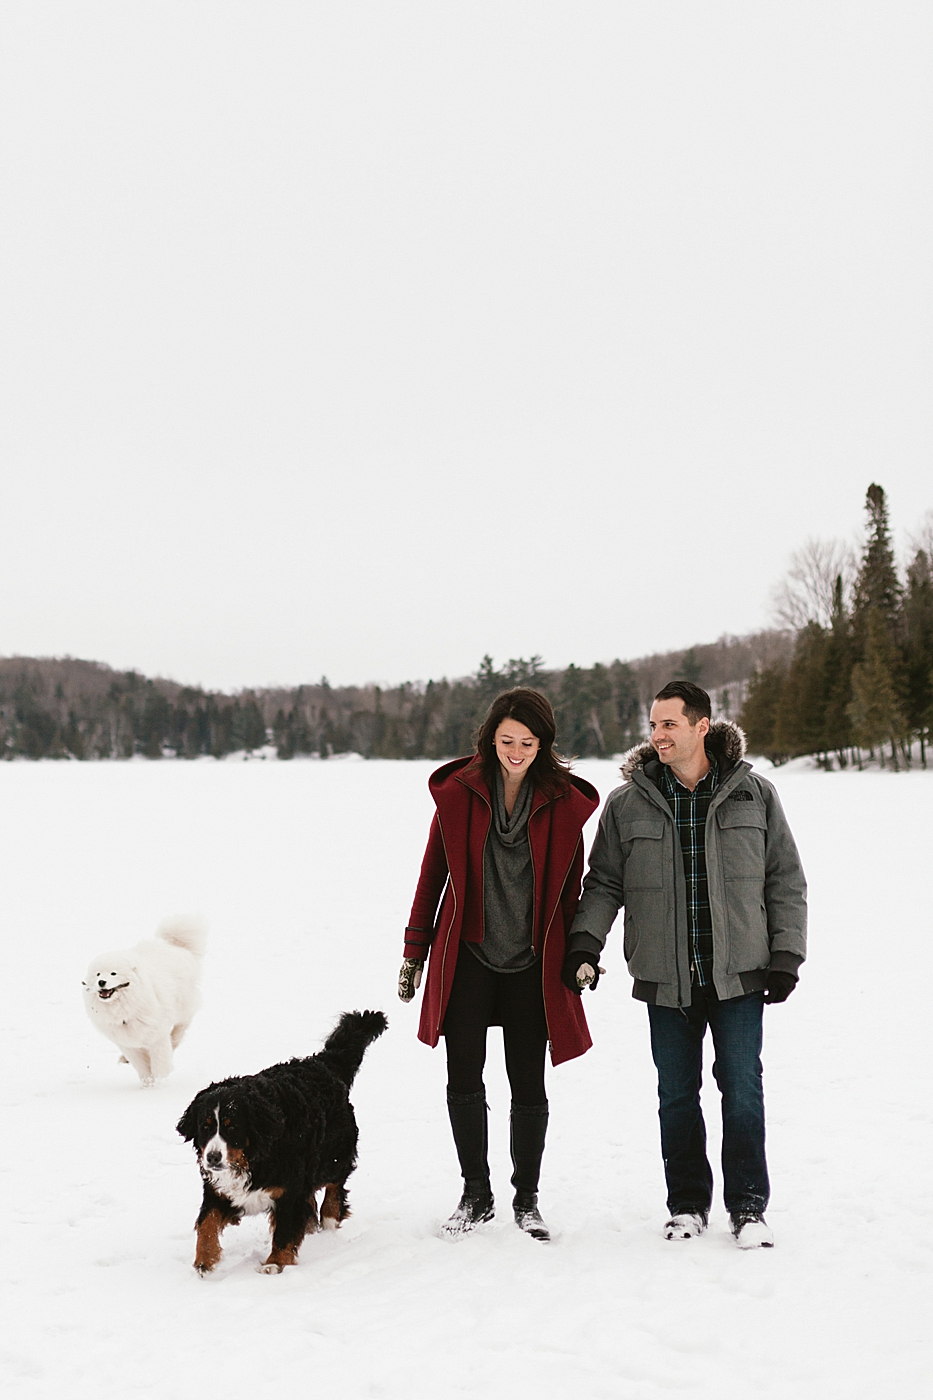 Wakefield,alberta,banff,bc,blog,blogger,boss babe,boss bitch,branding,business,business babe,business expert,business owner,business photography,calgary,calgay,canada,coupes boudoir,couple,creative,elope,engage,engaged,engagement ring,free spirit,fun engagement session,gatineau,groom,josie nicole,josie nicole baerg,josie nicole photography,lifestyle blog,montreal,ontario,ontario blog,ottawa,ottawa photographer,ottawa photography,ottawa wedding,outdoors,outdoorsy,photographer,photography,playful outdoors engagement session,prince edward county,prince edward county wedding,the art of owning a business,the market,toronto,toronto downtown wedding,toronto engagement,toronto photographer,toronto wedding,toronto wedding photographer,toronto wedding photography,winter engagement session,